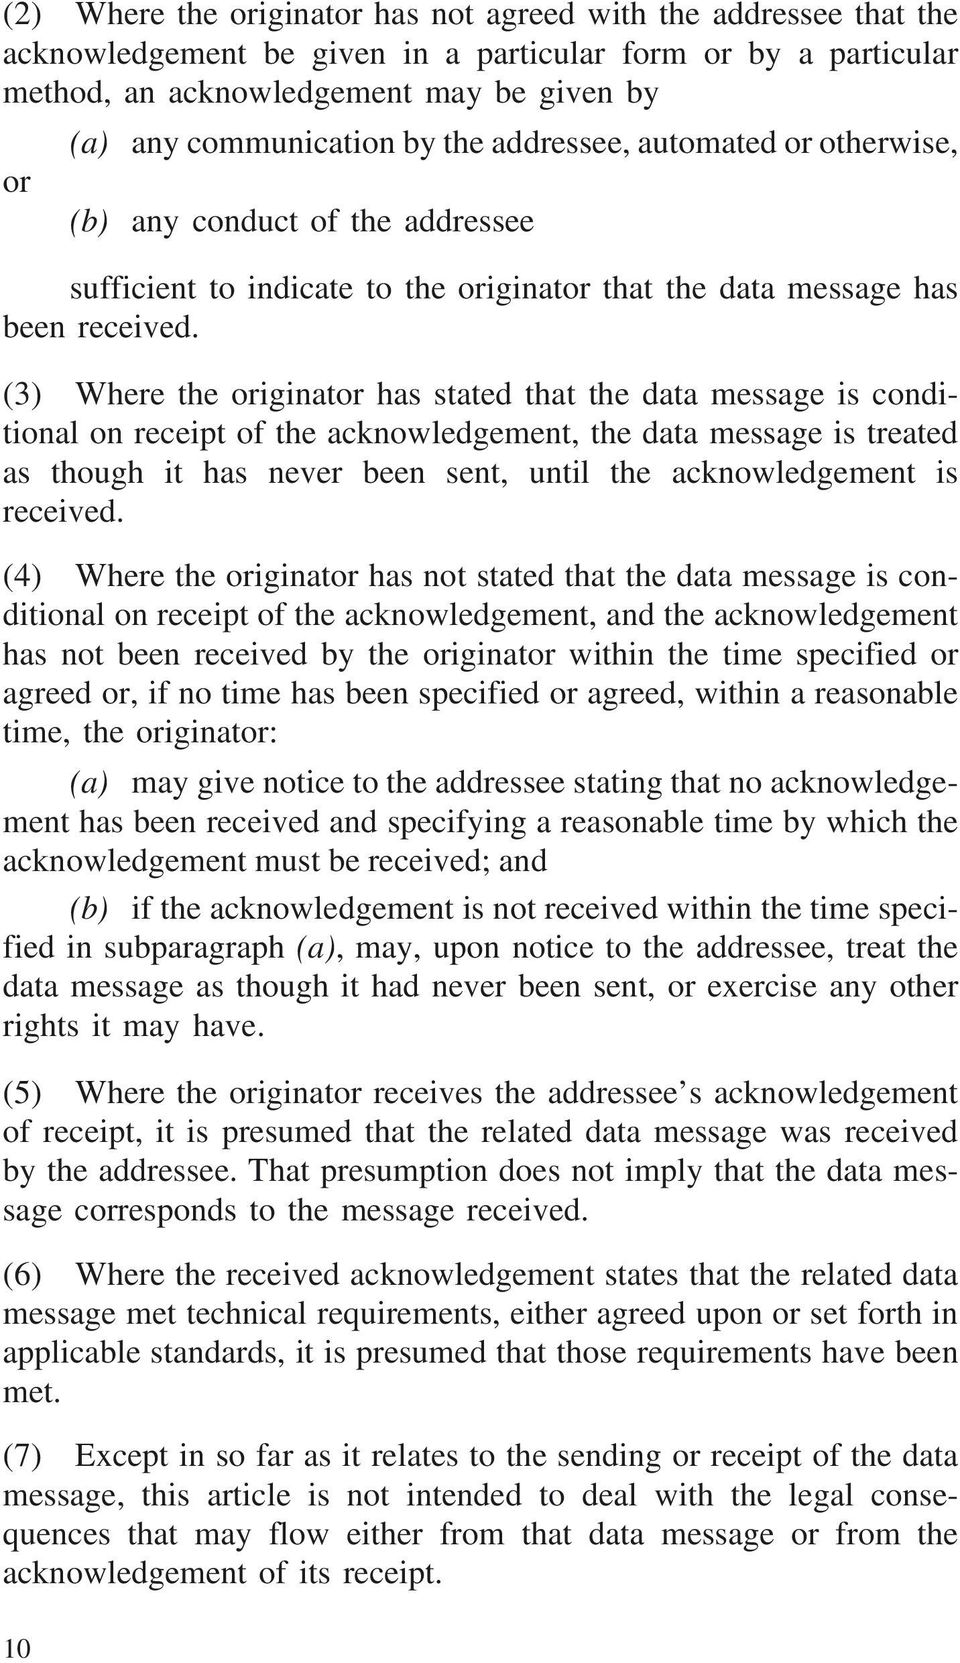 (3) Where the originator has stated that the data message is conditional on receipt of the acknowledgement, the data message is treated as though it has never been sent, until the acknowledgement is